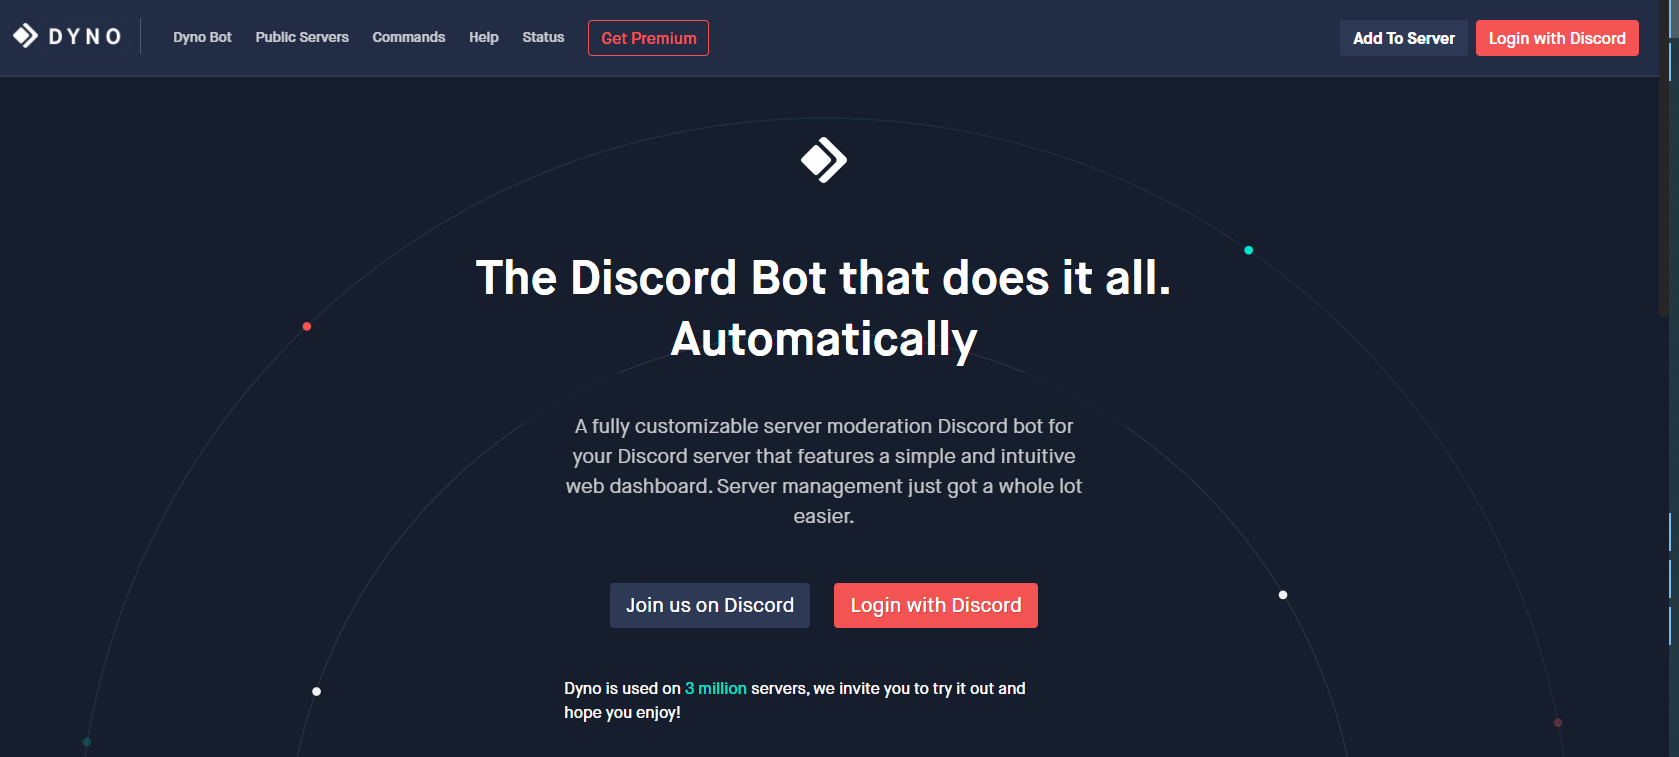 How to Add Dyno Bot to Server